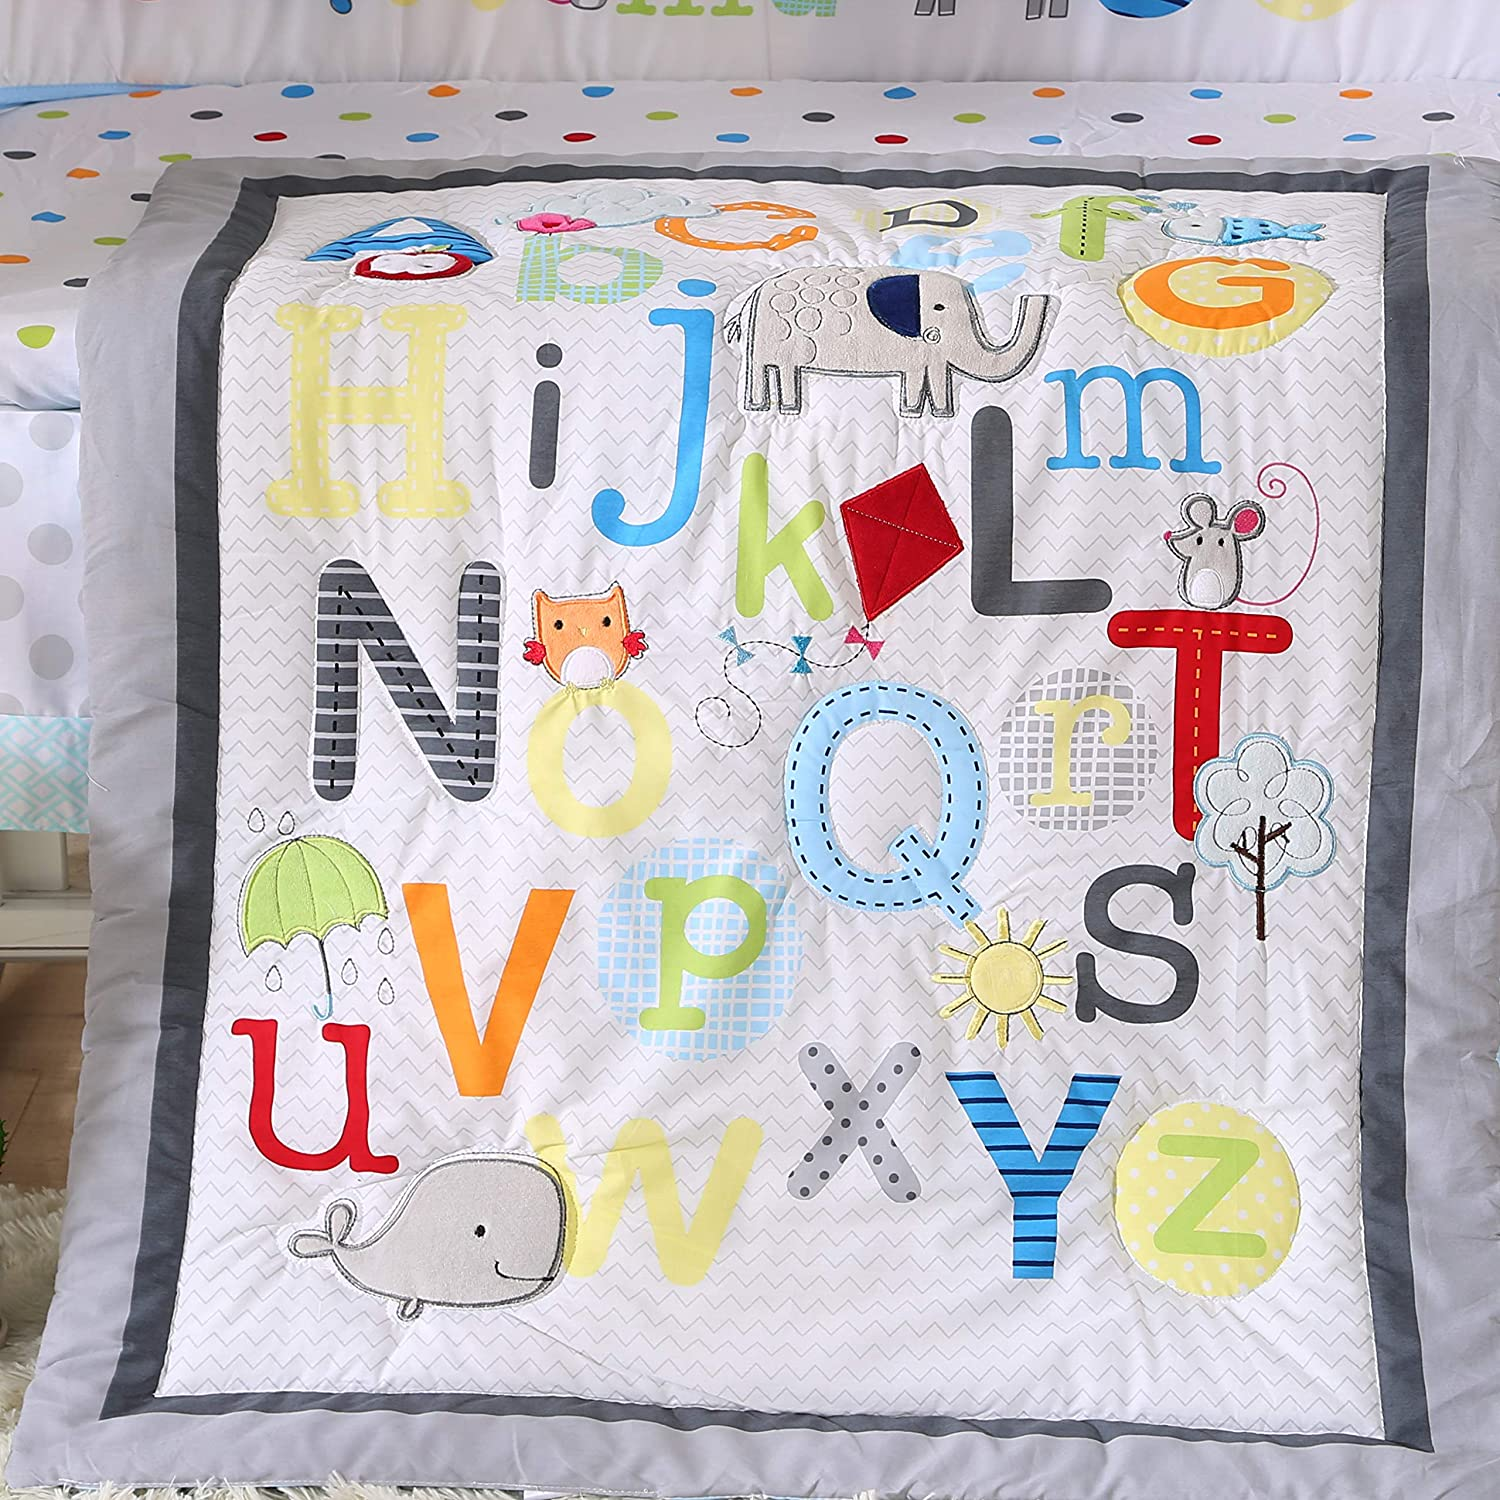 Wowelife Alphabet Crib Bedding Sets 7 Piece Upgraded Colorful A-Z and Zoo Nursery Crib Set White//Grey//Blue